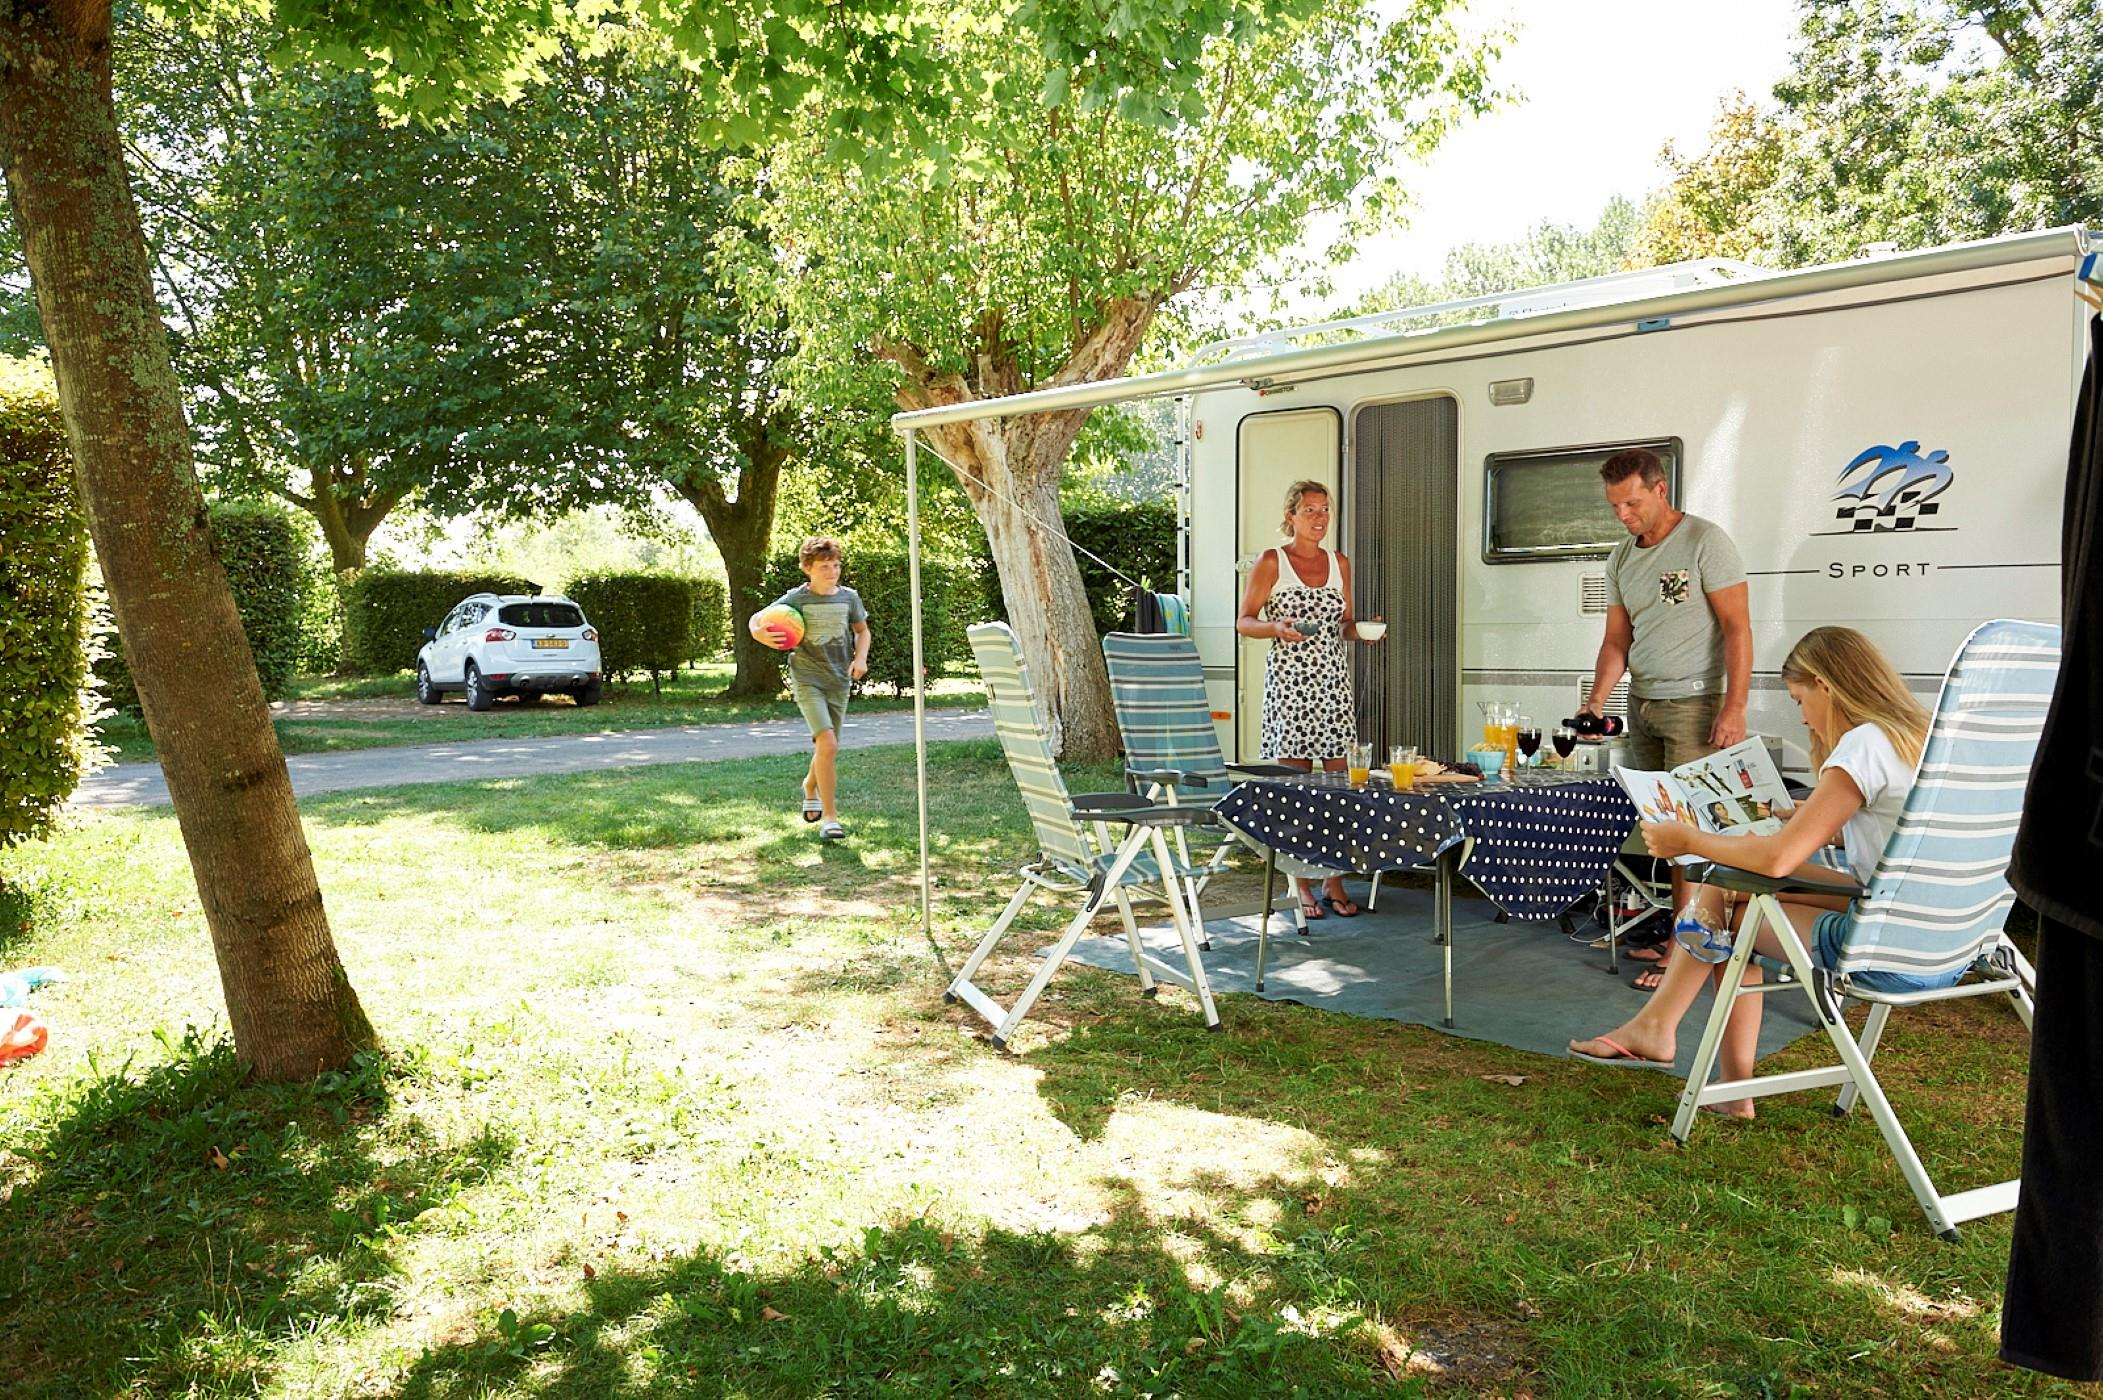 Pitch - Camping Pitch Caravan, Tent + Car Or Camper Van + 1St Small Tent Included - Camping Aux Rives du Soleil